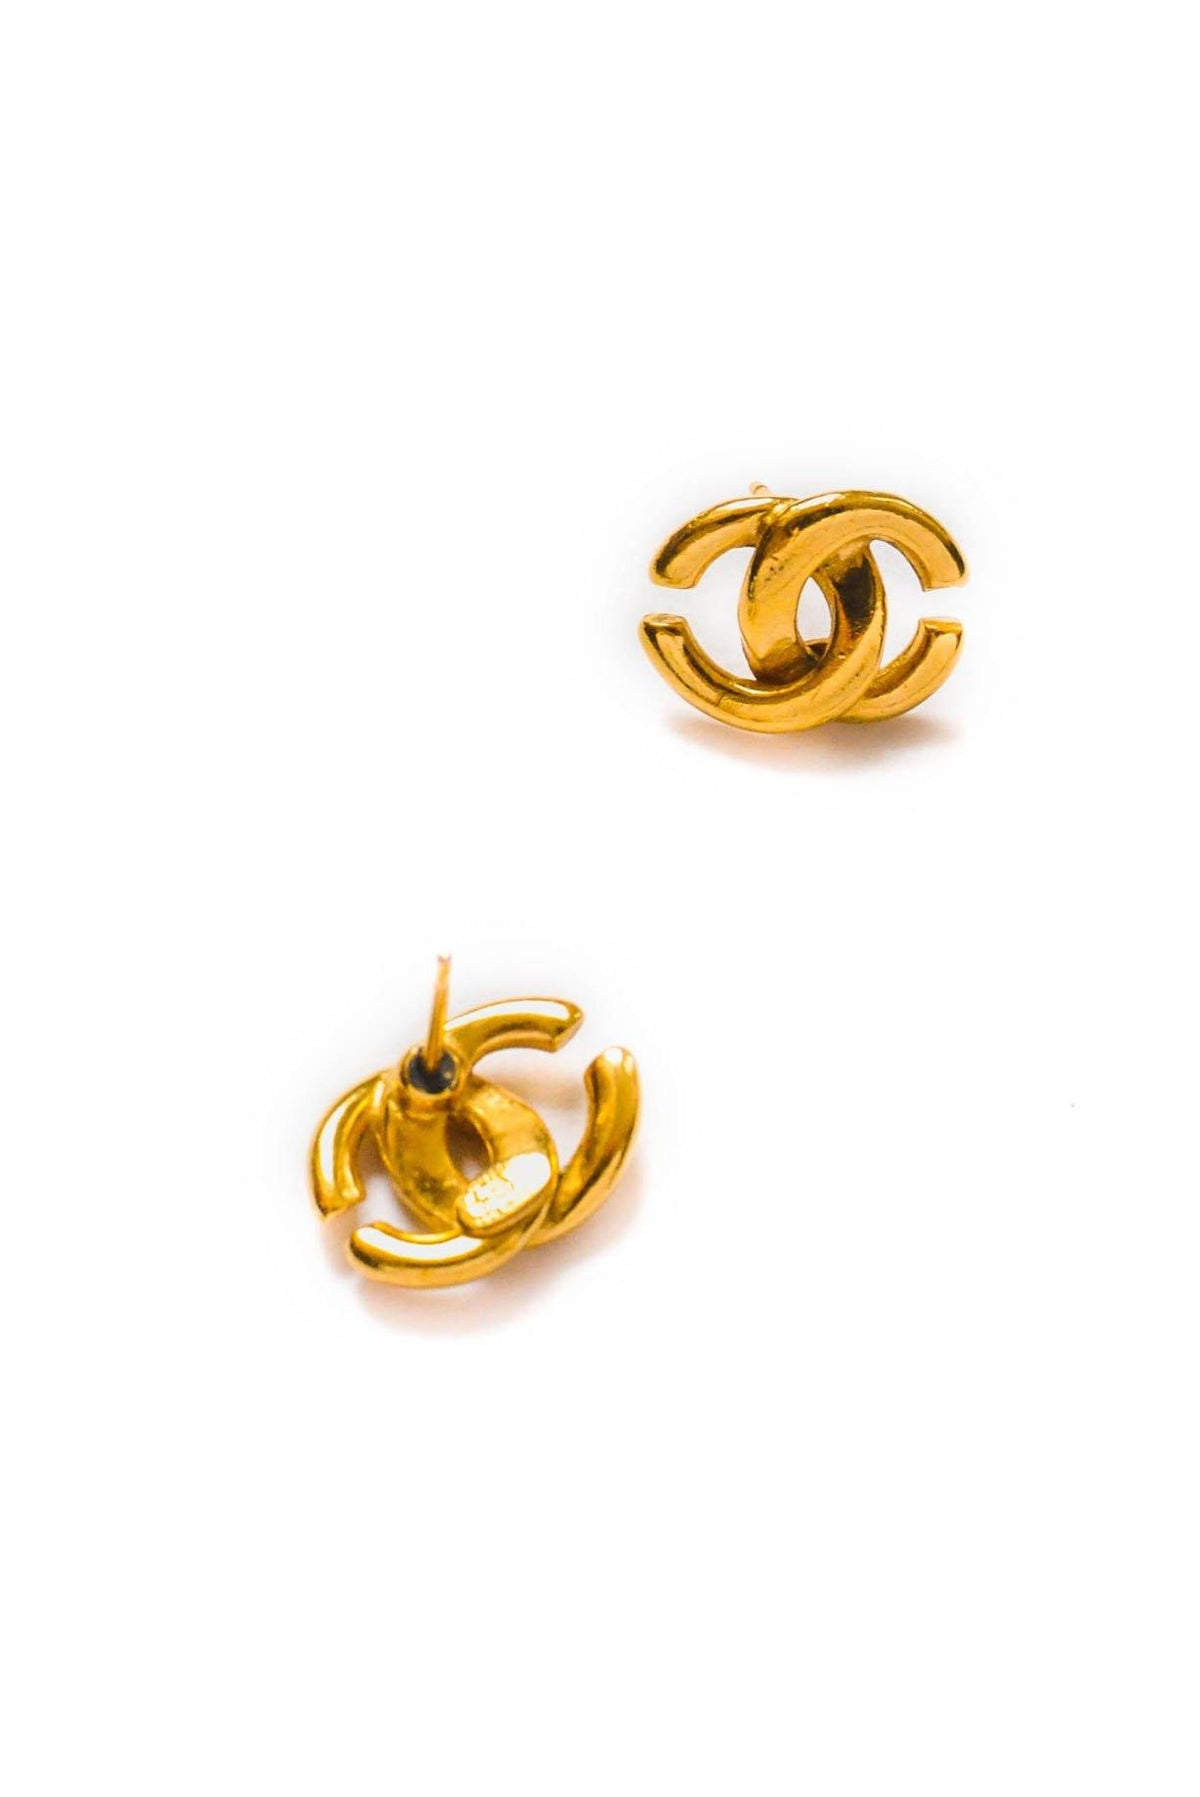 Vintage Chanel CC Pierced Earrings from Sweet and Spark